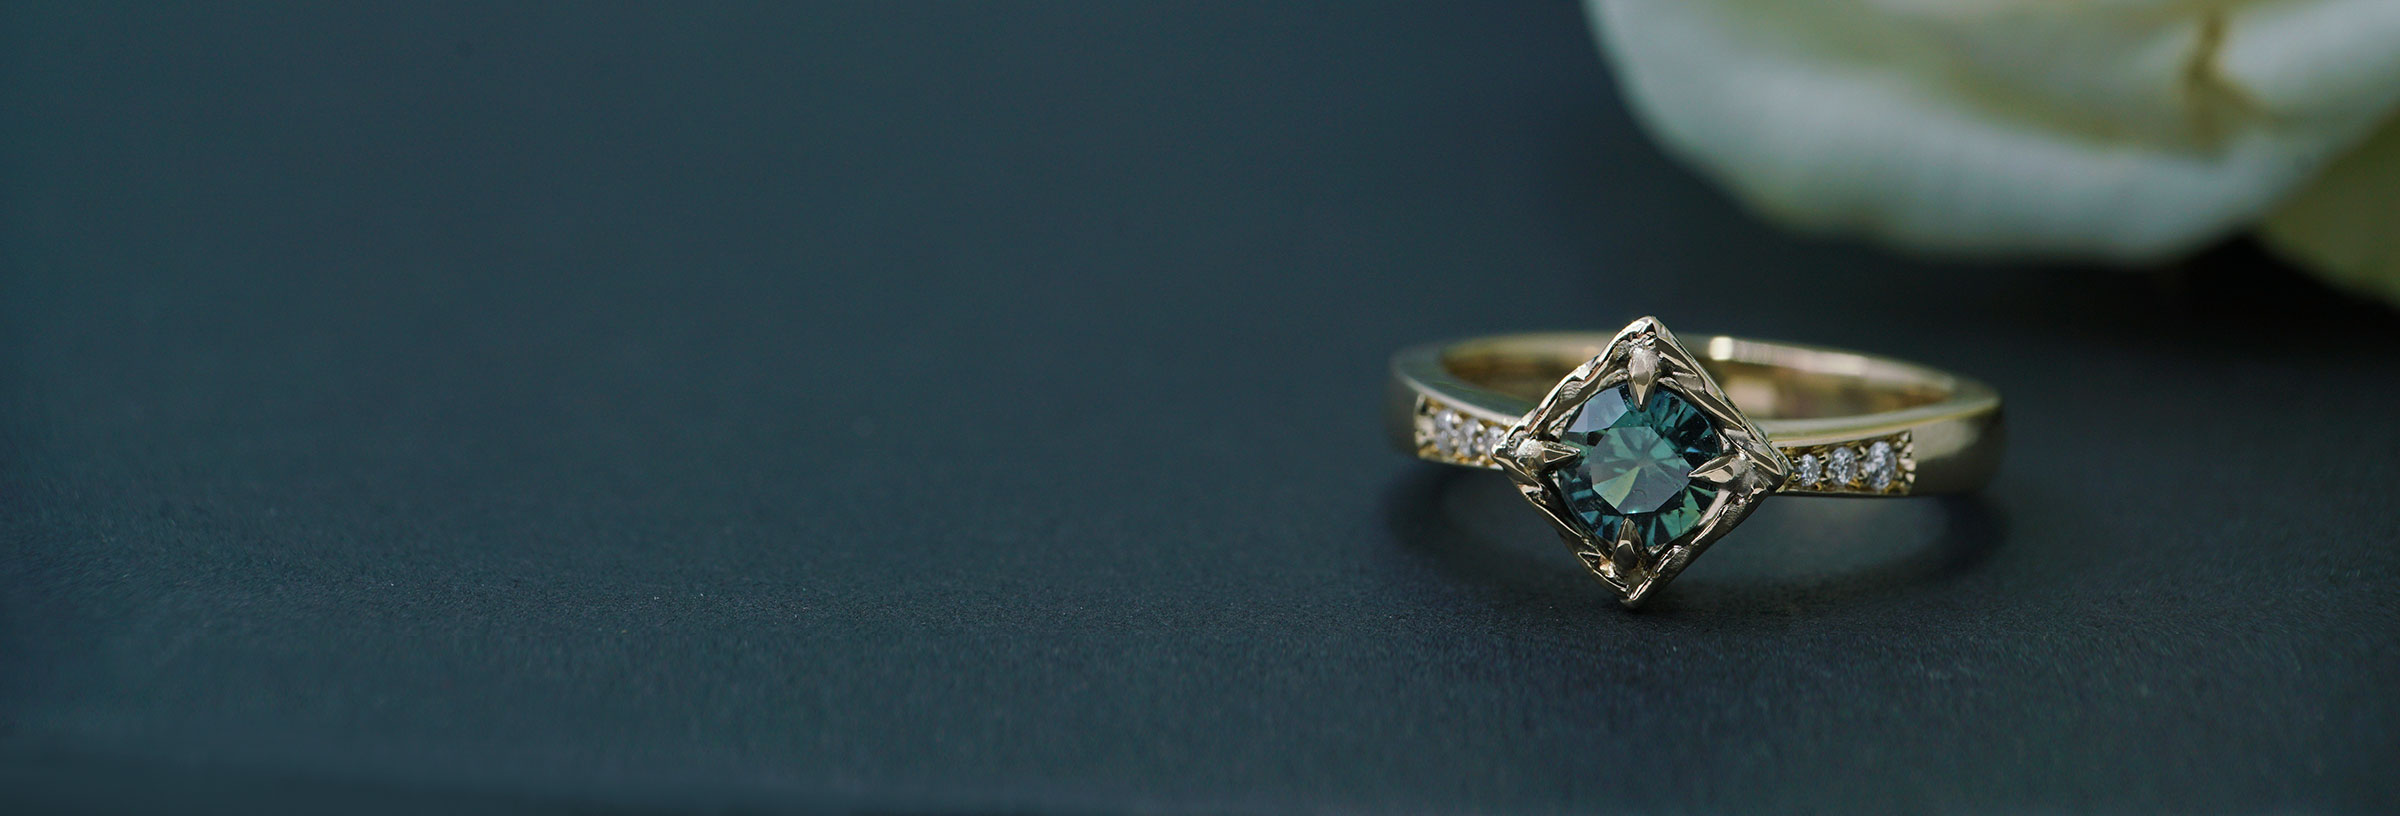 yellow-gold-teal-sapphire-and-diamond-antique-style-engagement-ring